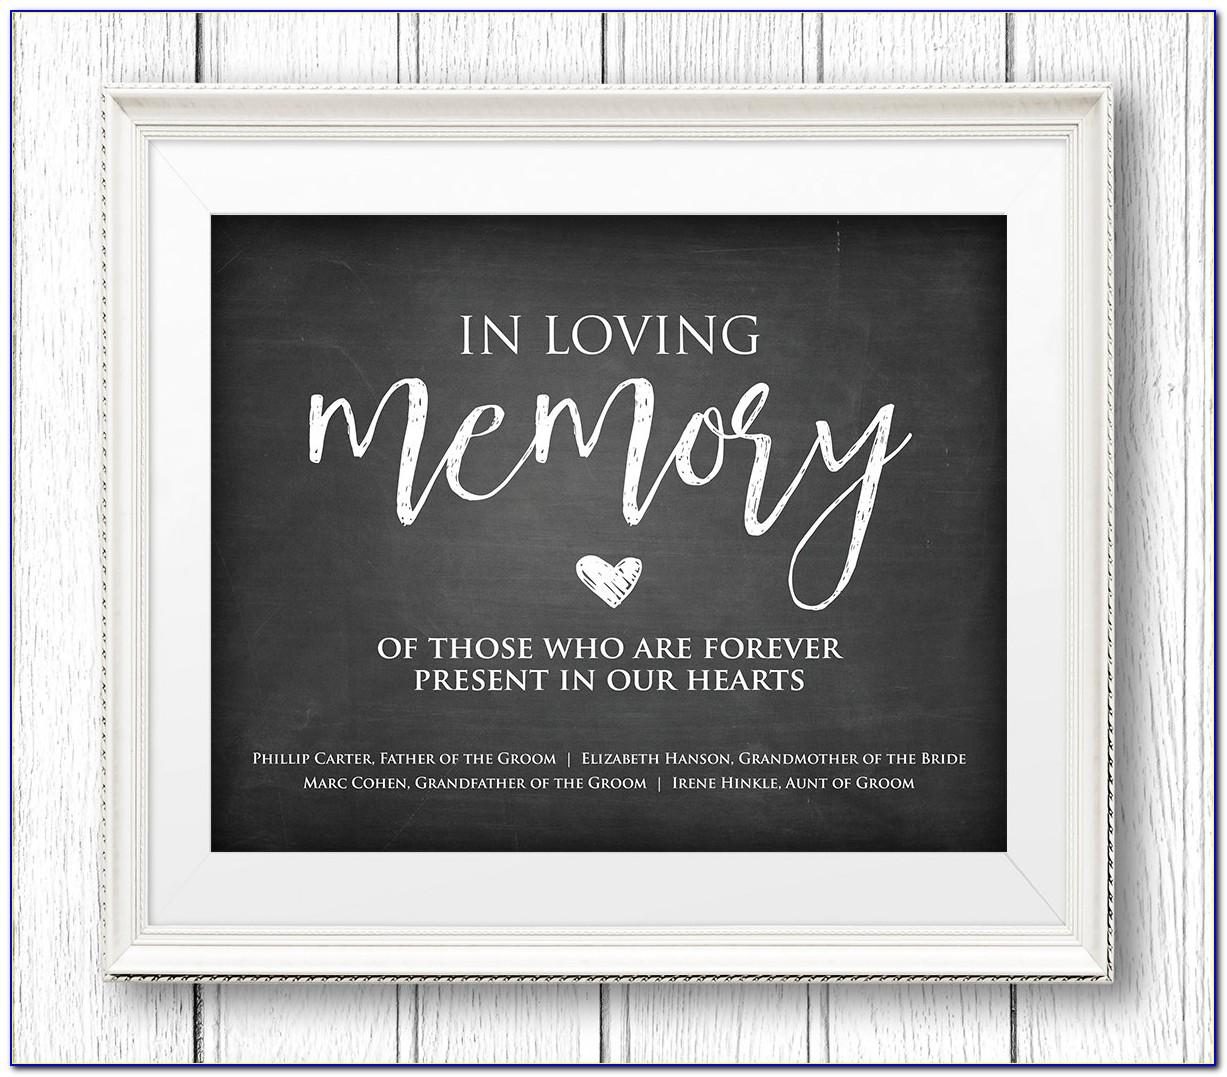 In Loving Memory Decal Templates